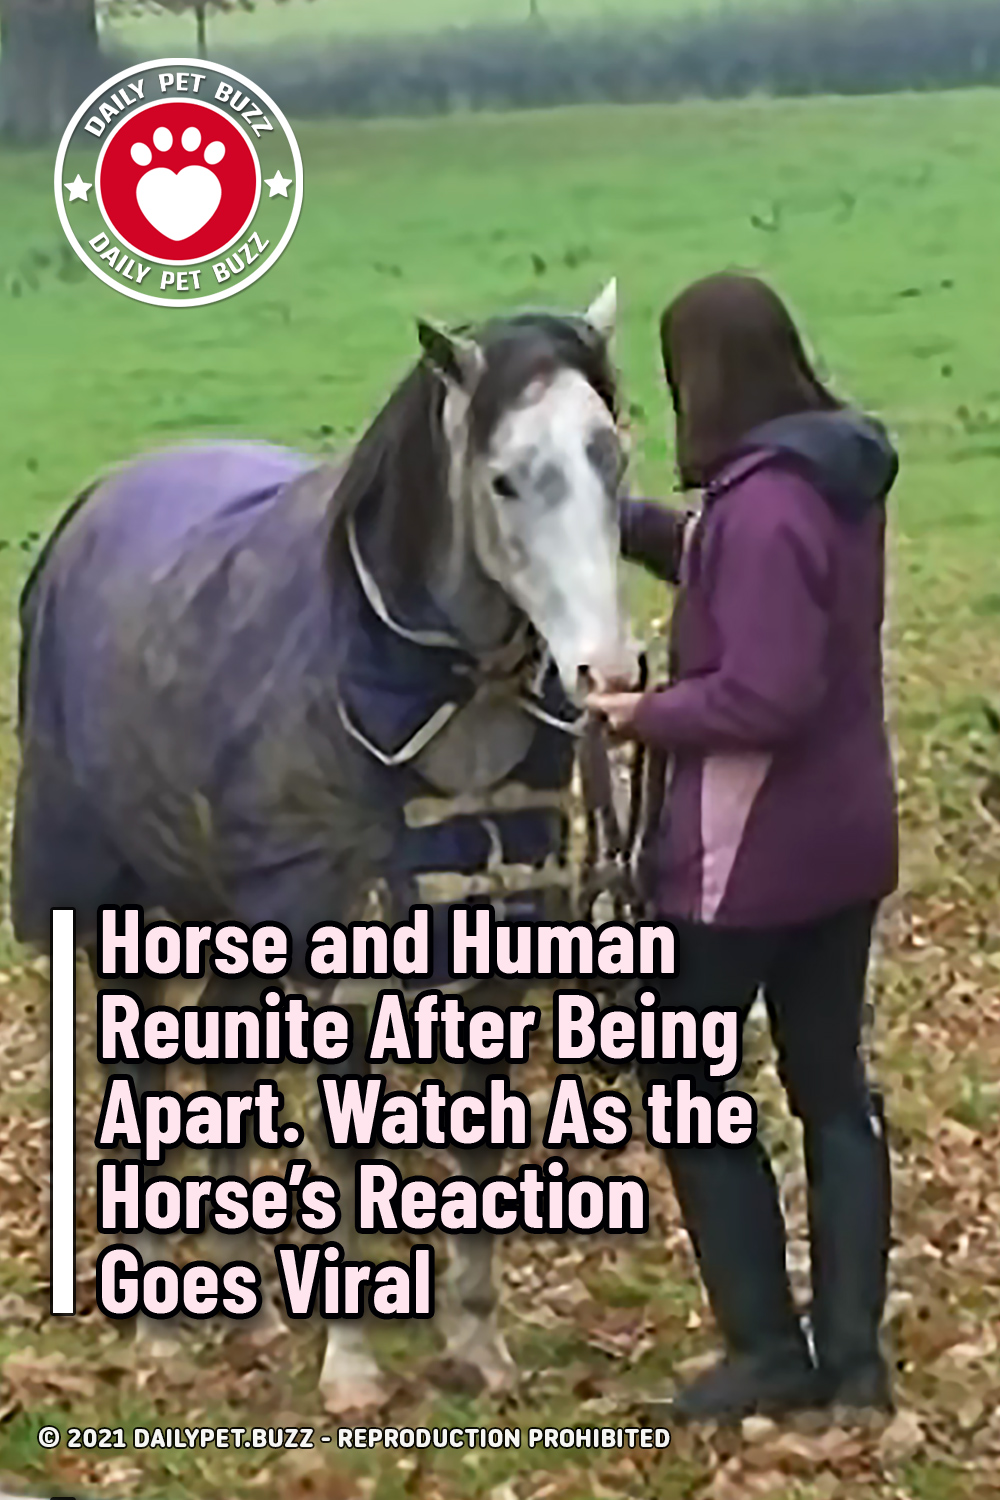 Horse and Human Reunite After Being Apart. Watch As the Horse's Reaction Goes Viral